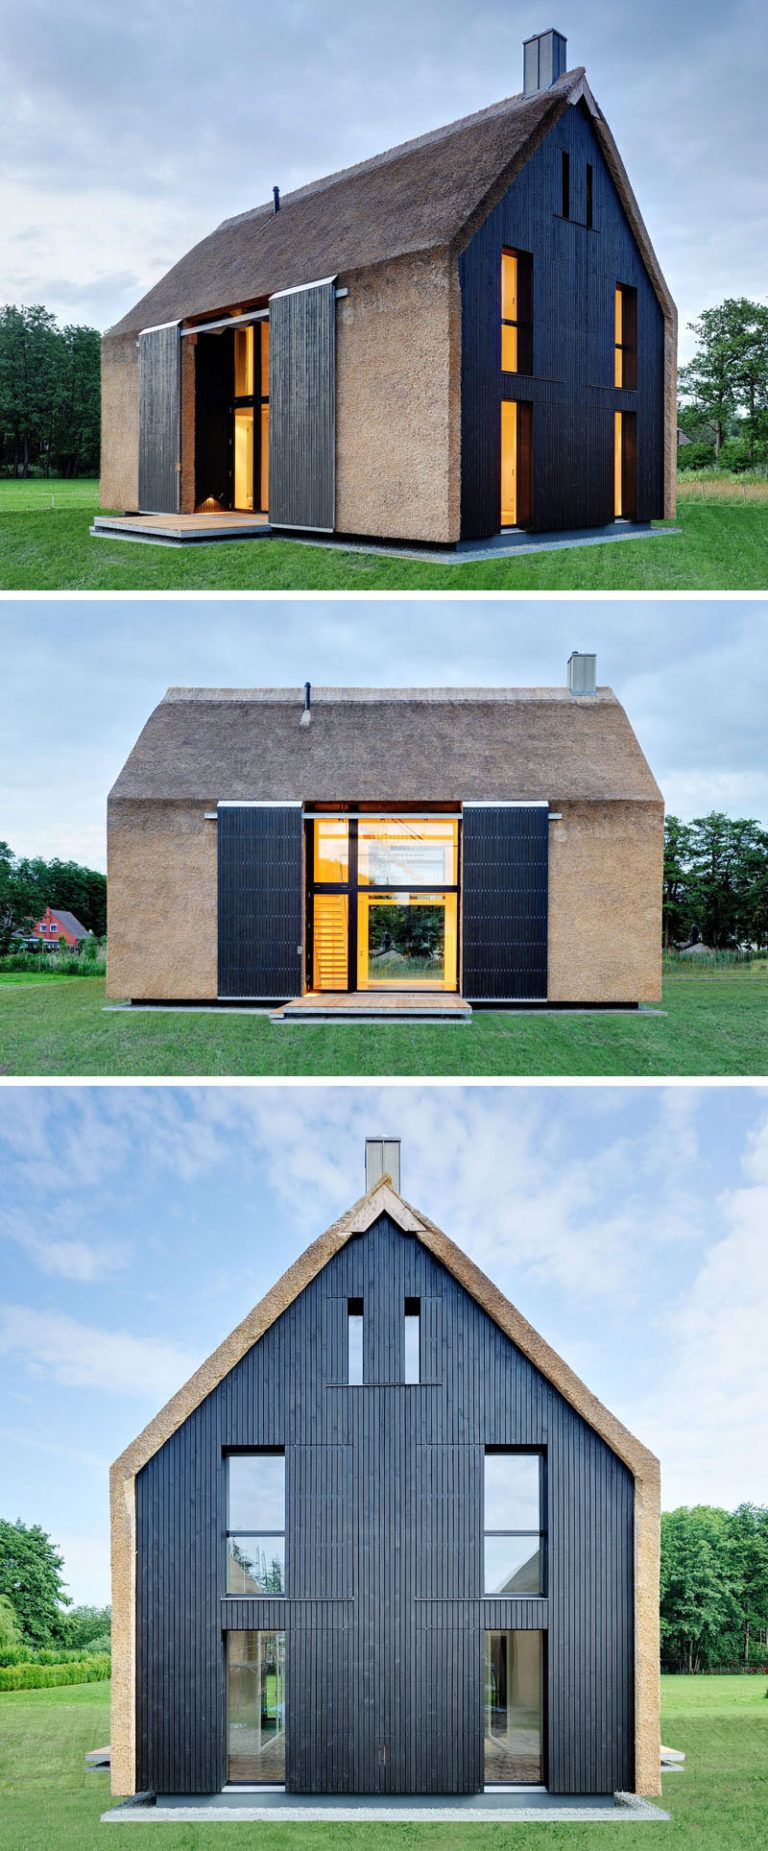 Arquitectura Fachadas De Casas Modernas Casas Modernas: 12 Examples Of Modern Houses And Buildings That Have A Thatched Roof // Thatch Covers The Entire